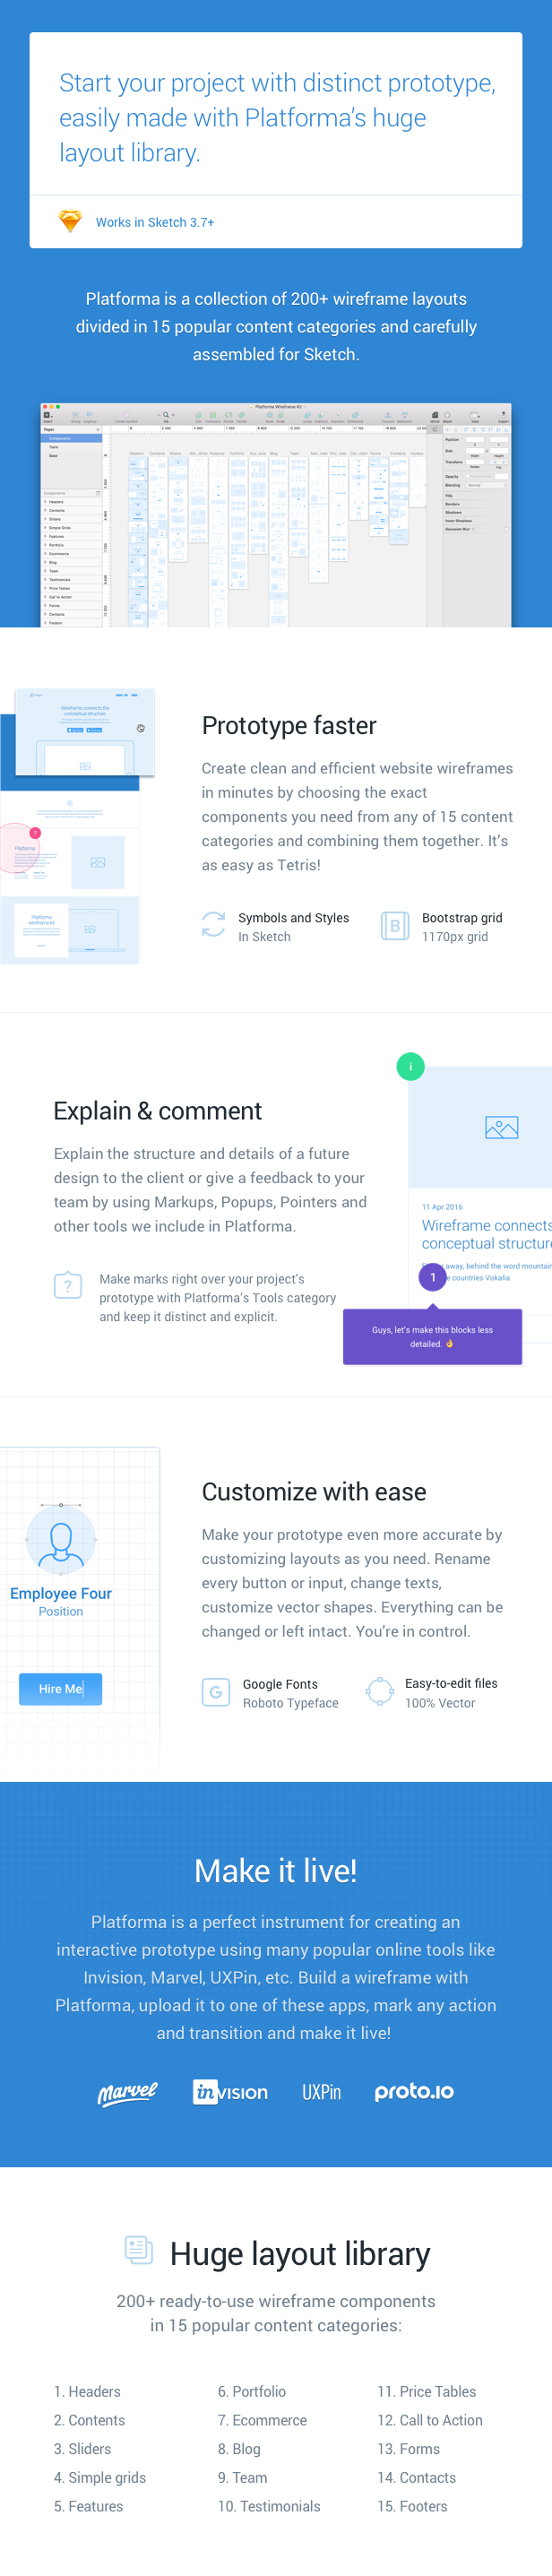 2 - Platforma: Ultimate Wireframe Kit of 200+ Layouts for Sketch